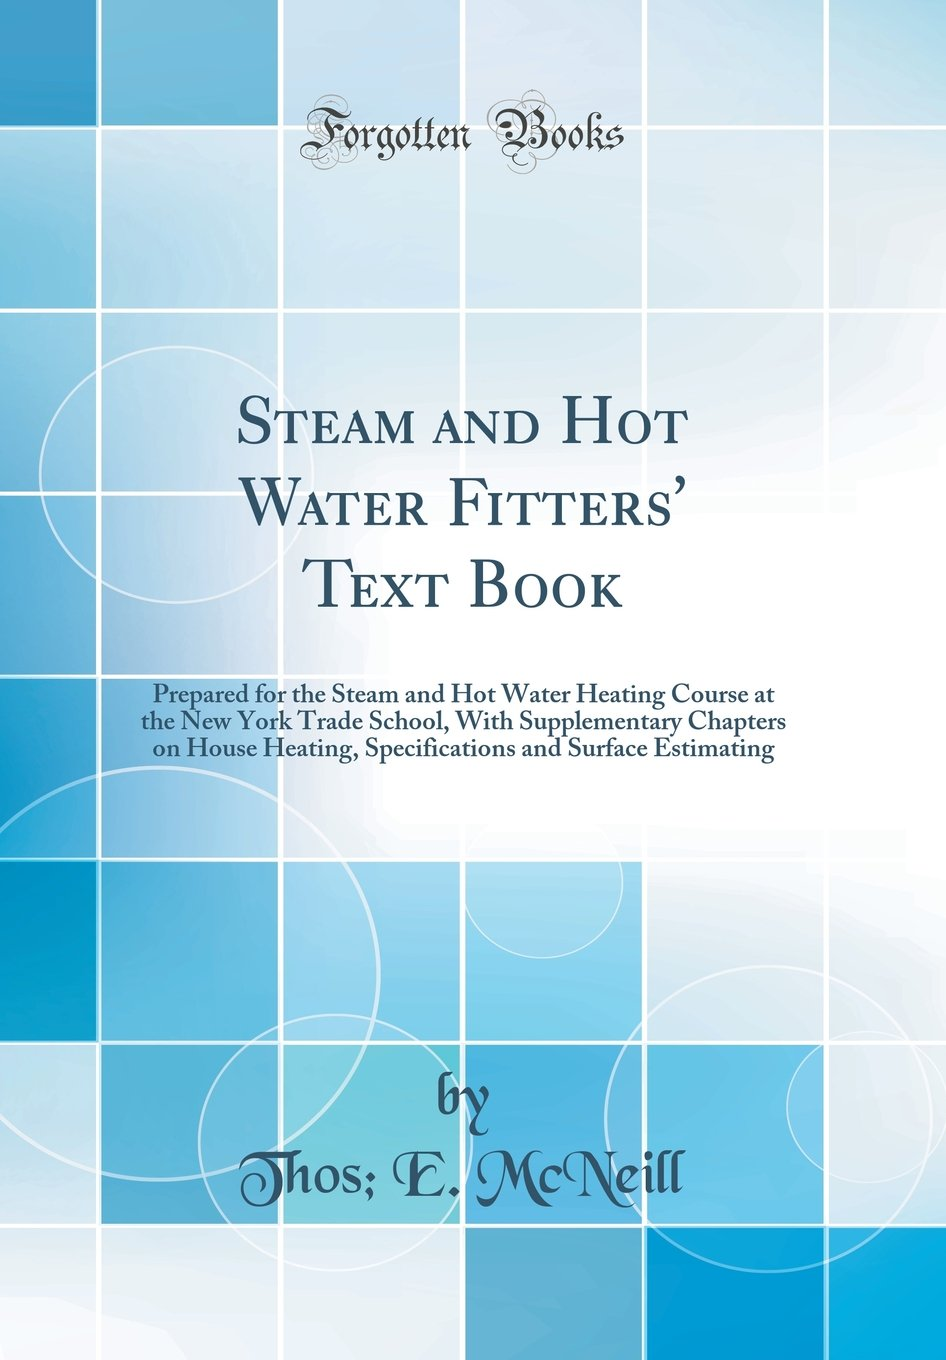 steam-and-hot-water-fitters-text-book-prepared-for-the-steam-and-hot-water-heating-course-at-the-new-york-trade-school-with-supplementary-chapters-and-surface-estimating-classic-reprint